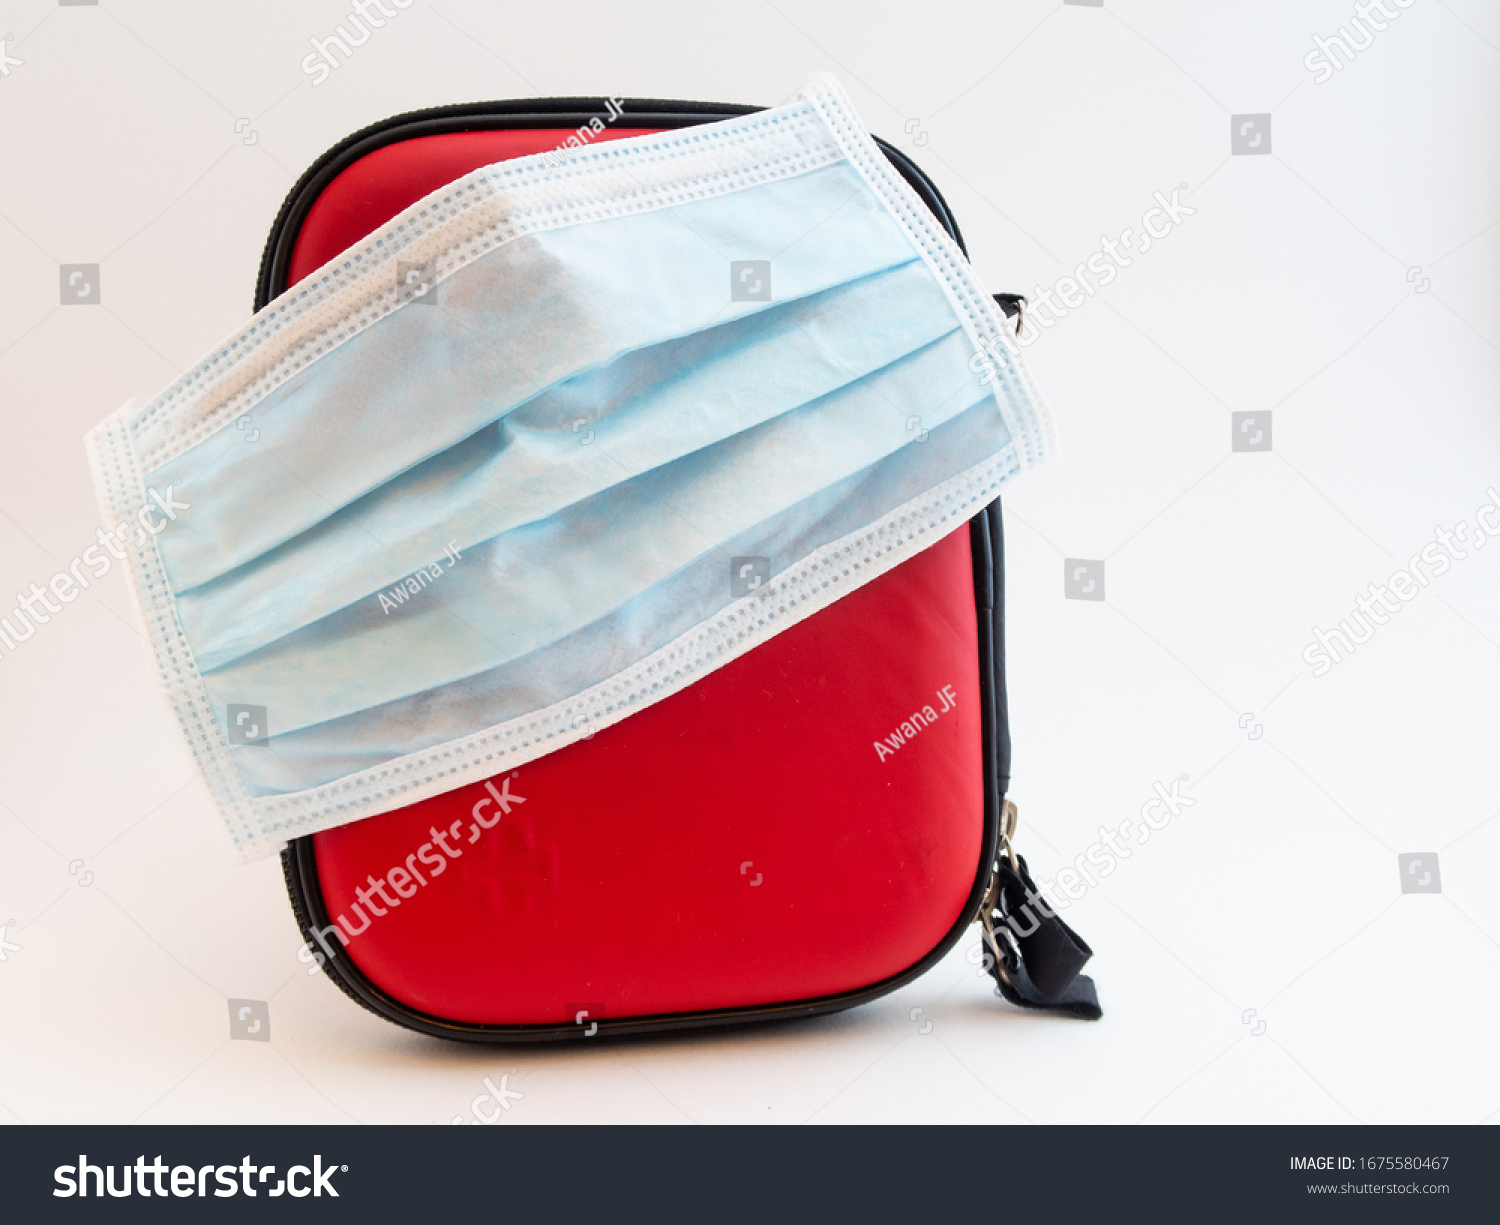 stock-photo-closeup-of-a-red-first-aid-k